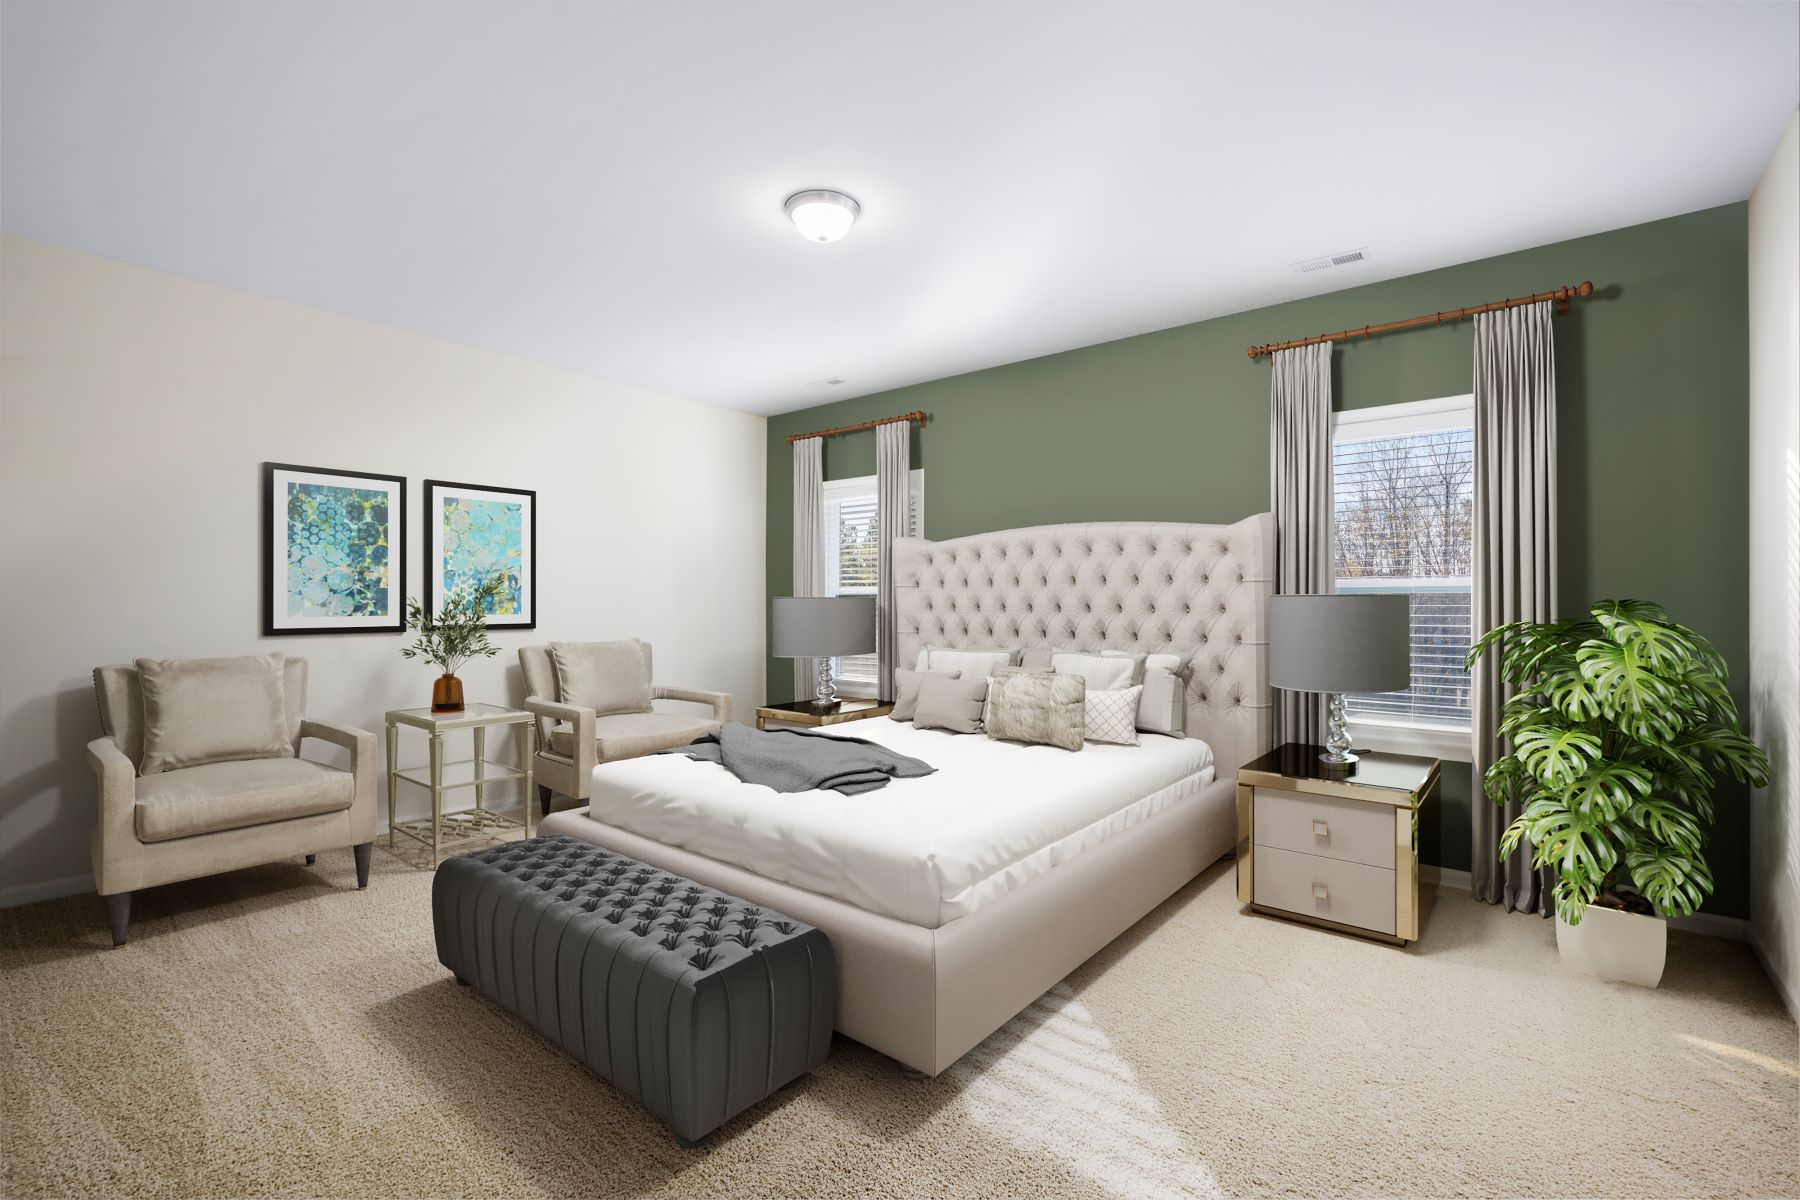 Marshall Plan Bedroom at Ballentine Place in Holly Springs North Carolina by Mattamy Homes